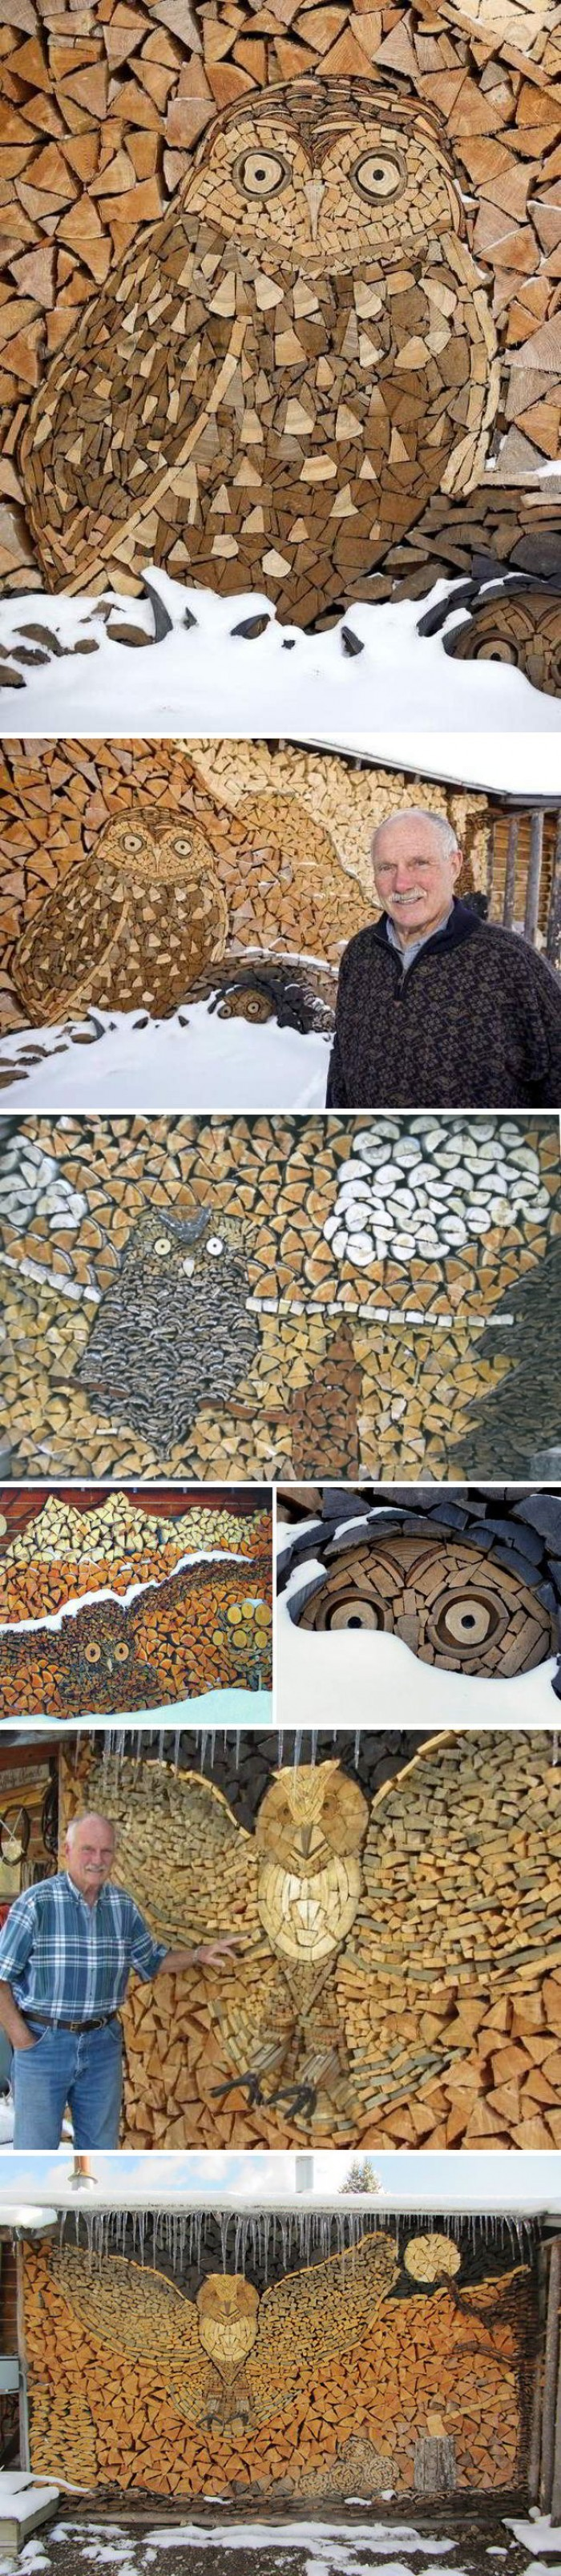 Incredible mosaics of owls by carefully piling firewood